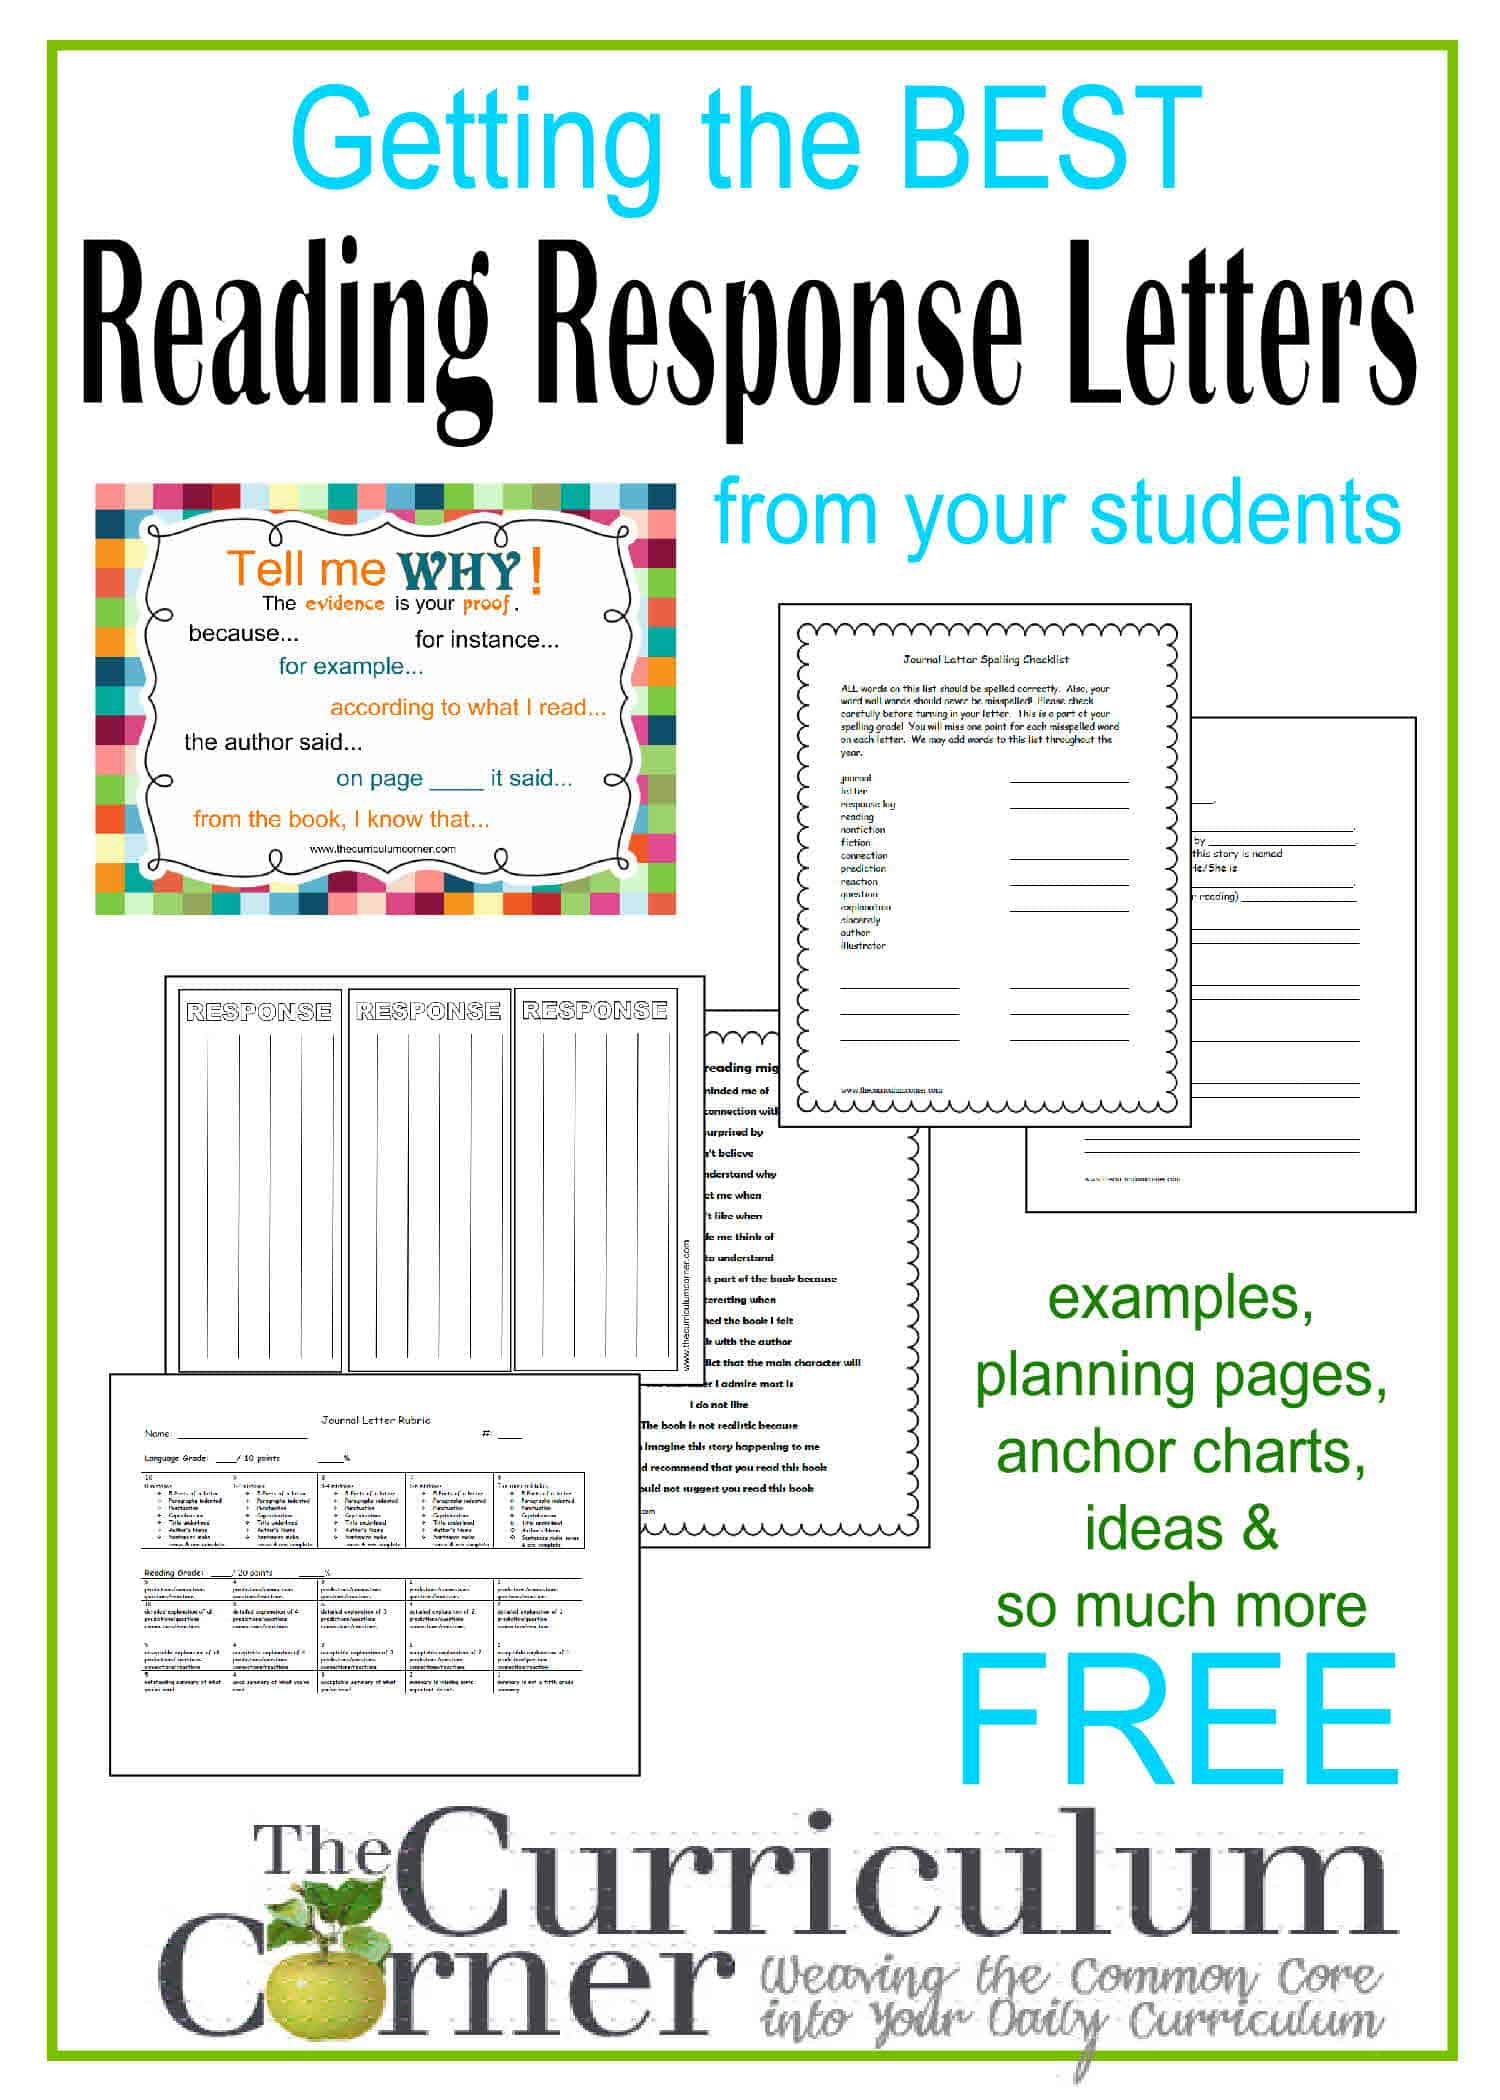 Reading Response Letters The Curriculum Corner 4 5 6